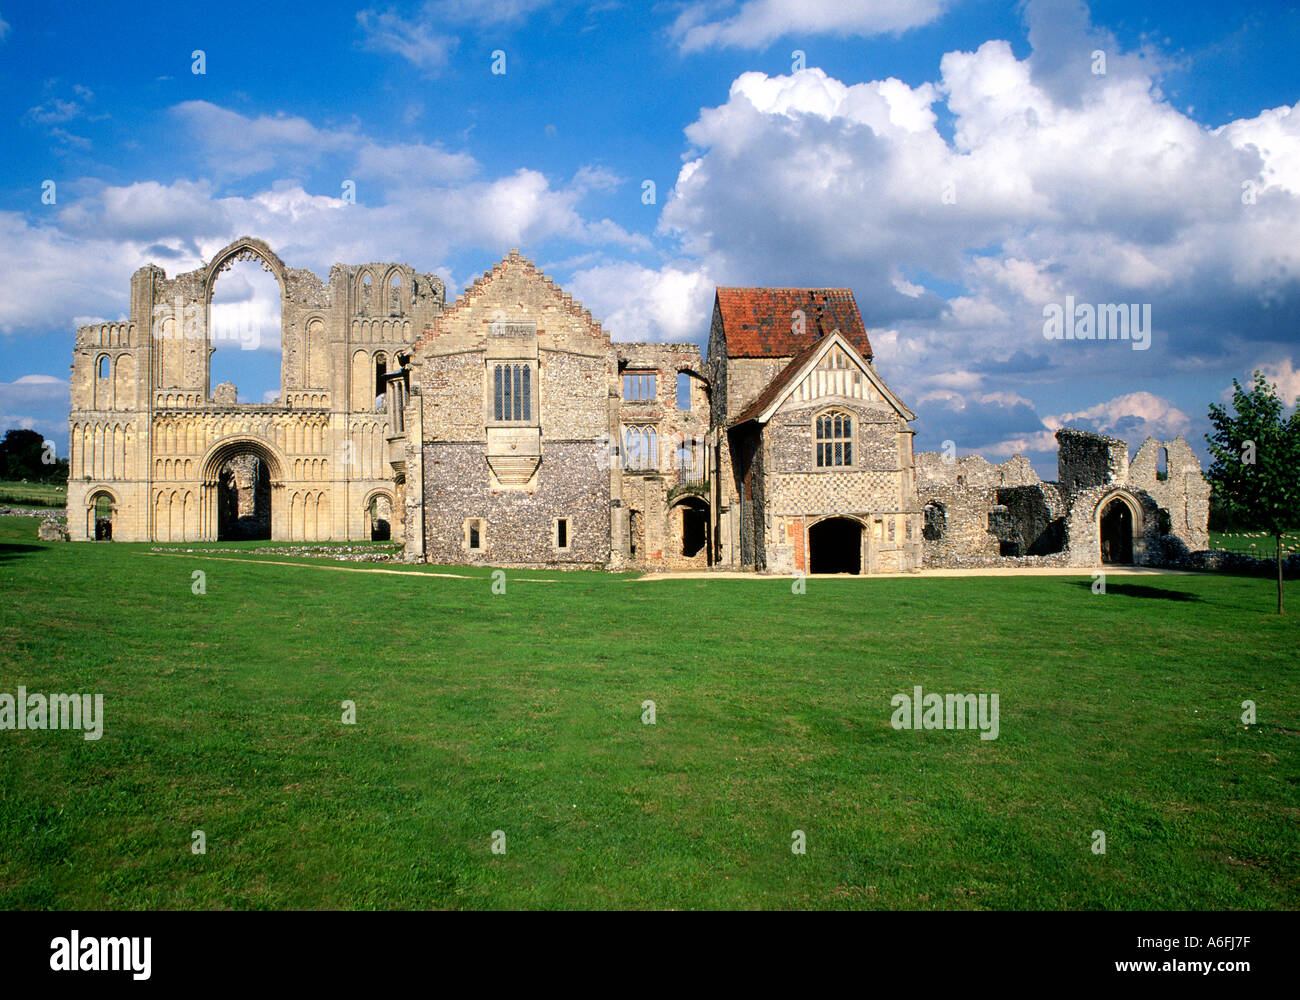 Castle Acre Priory Norfolk Castle Acre East Anglia England Uk